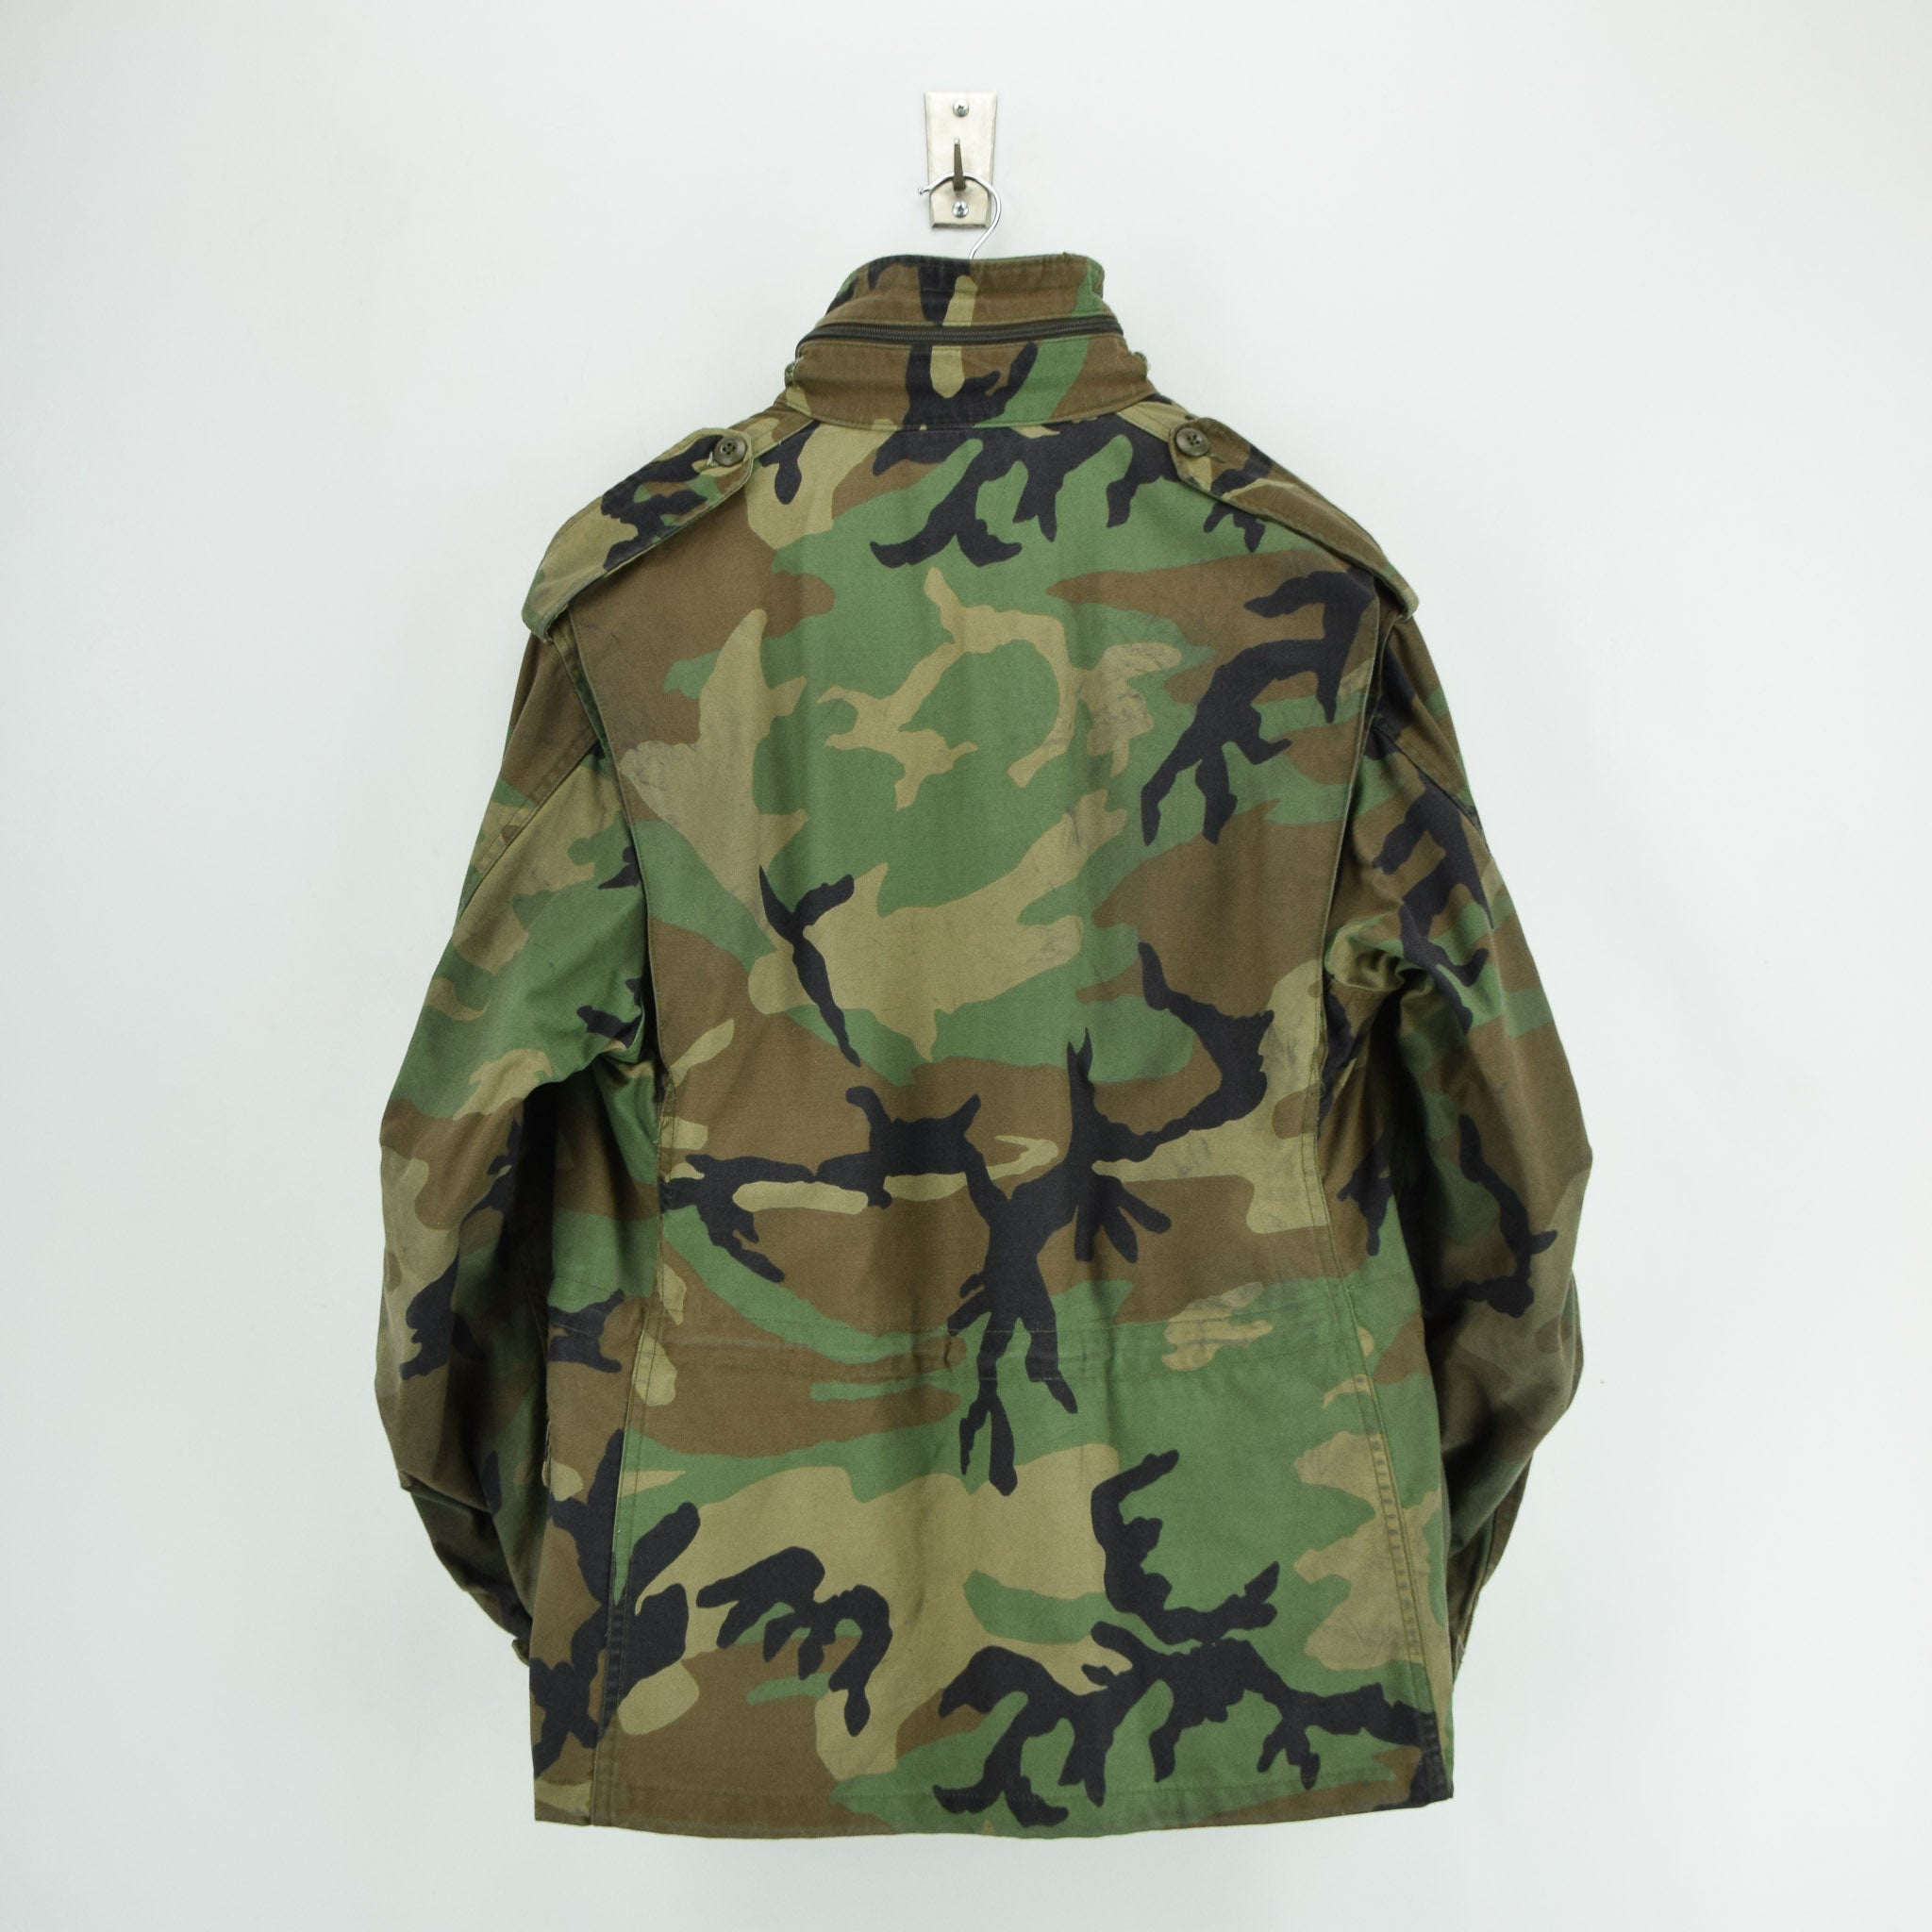 Vintage 80s M-65 Woodland Camouflage Field Coat Alpha Industries Army Jacket M back